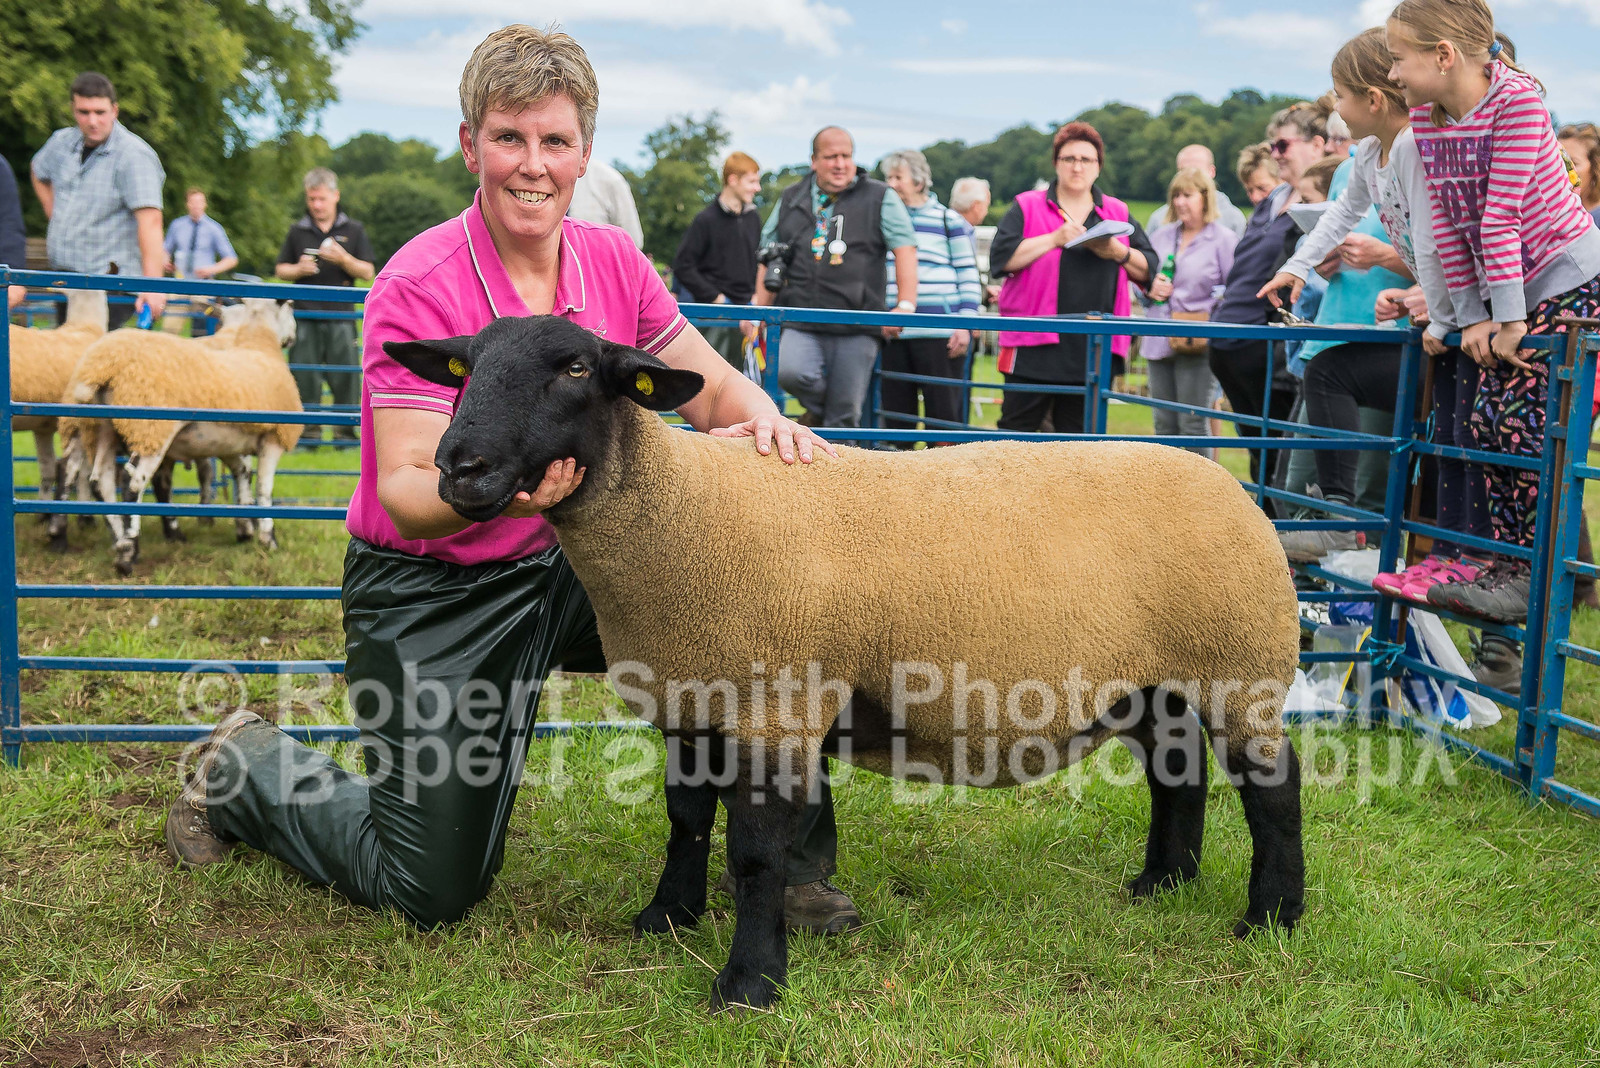 Champion of champions interbreed sheep - suffolk gimmer from AW and BT Taylor